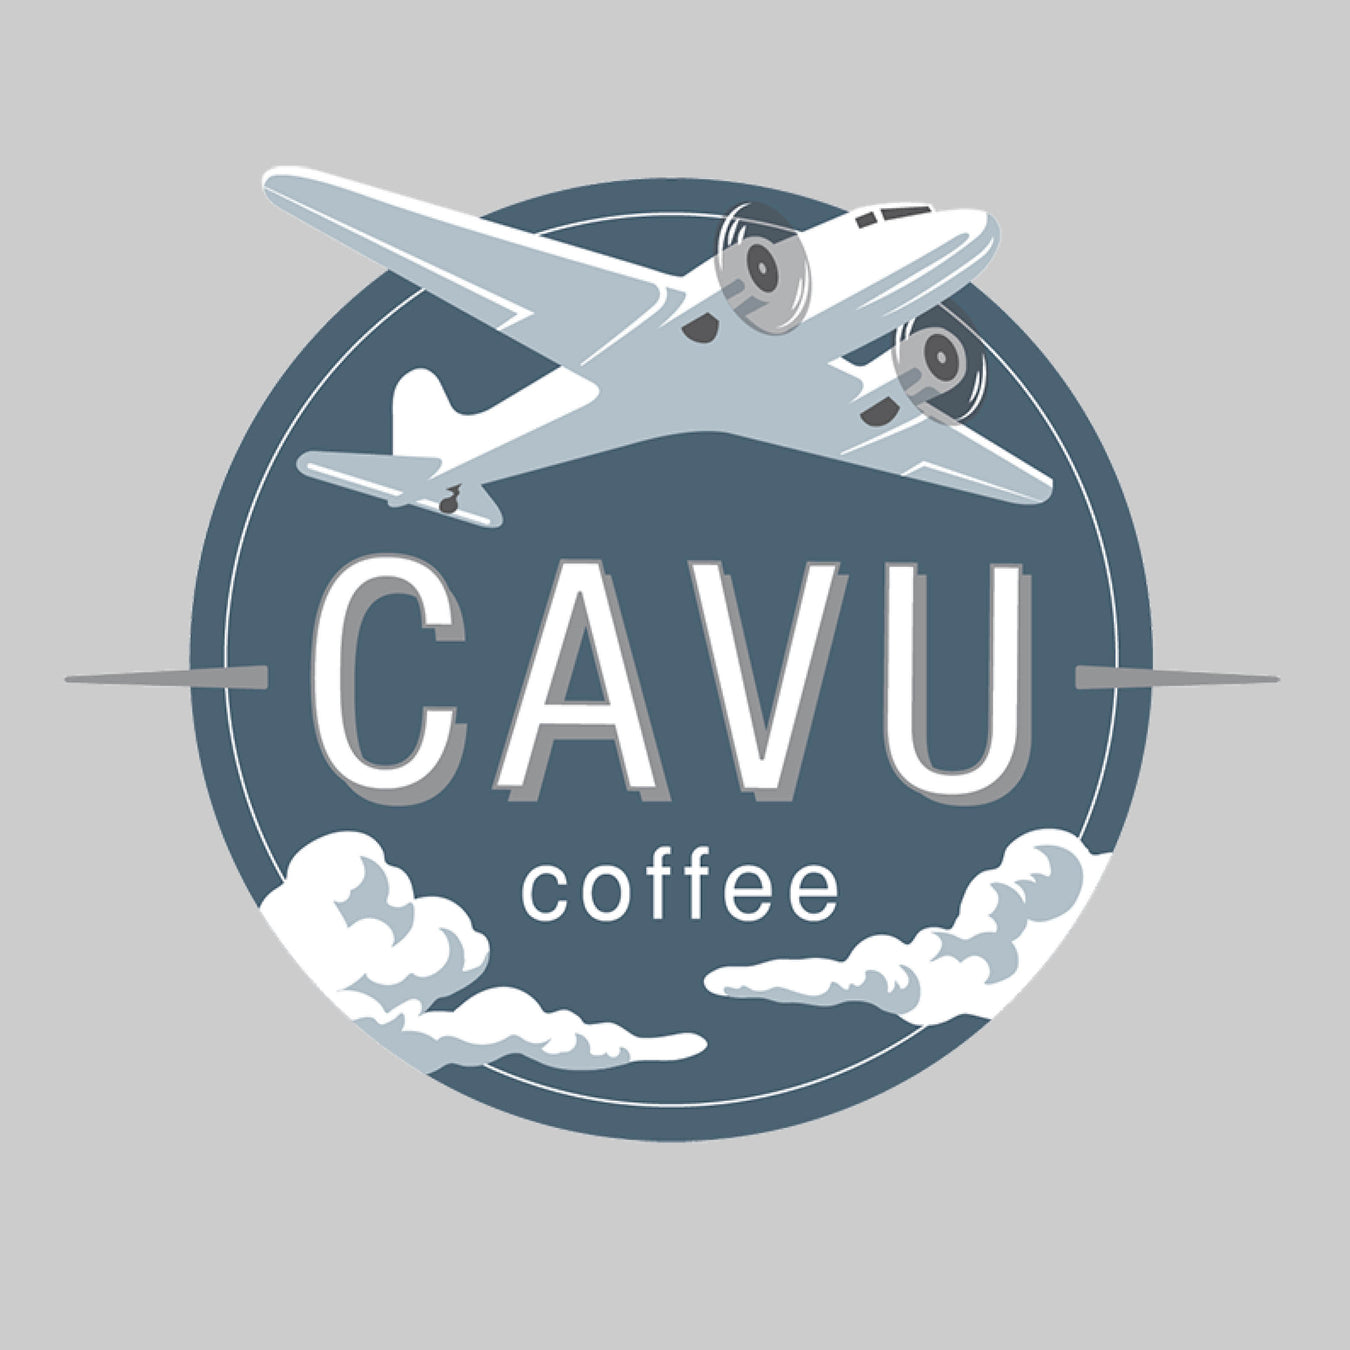 Support Cavu Coffee